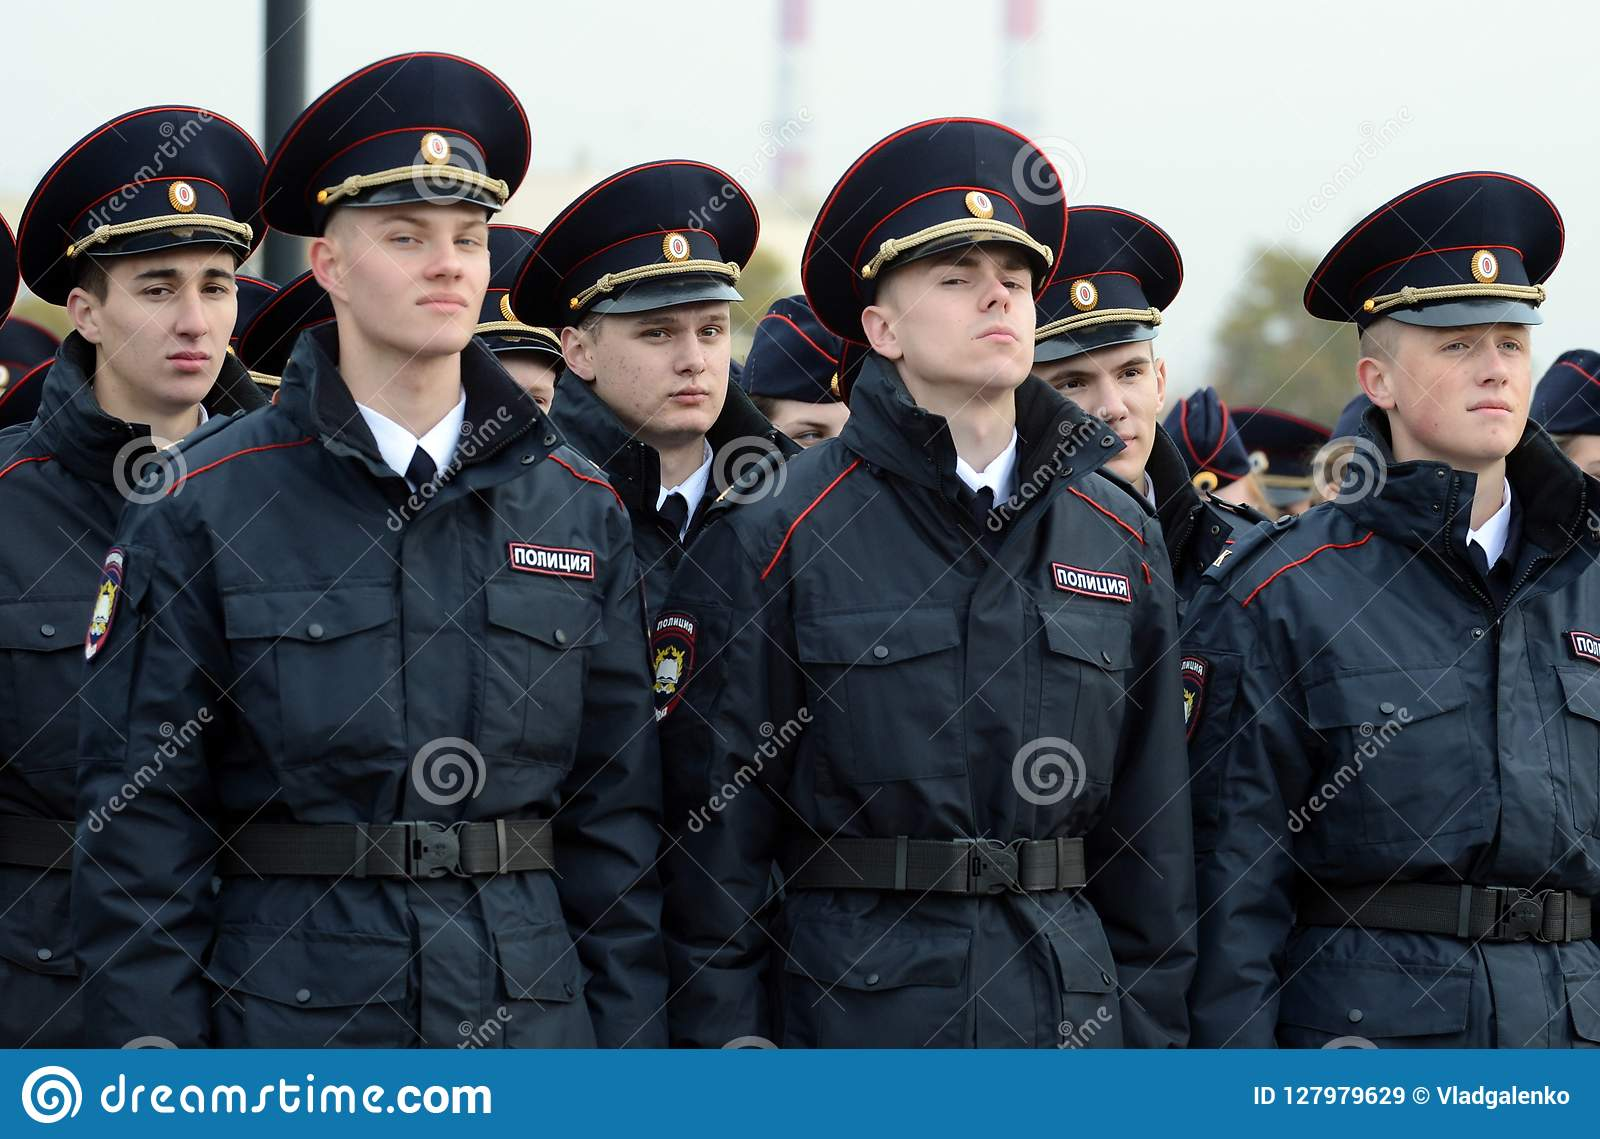 Cadets of the police of the Moscow Law University of the Ministry of Internal Affairs of Russia on the ceremonial building